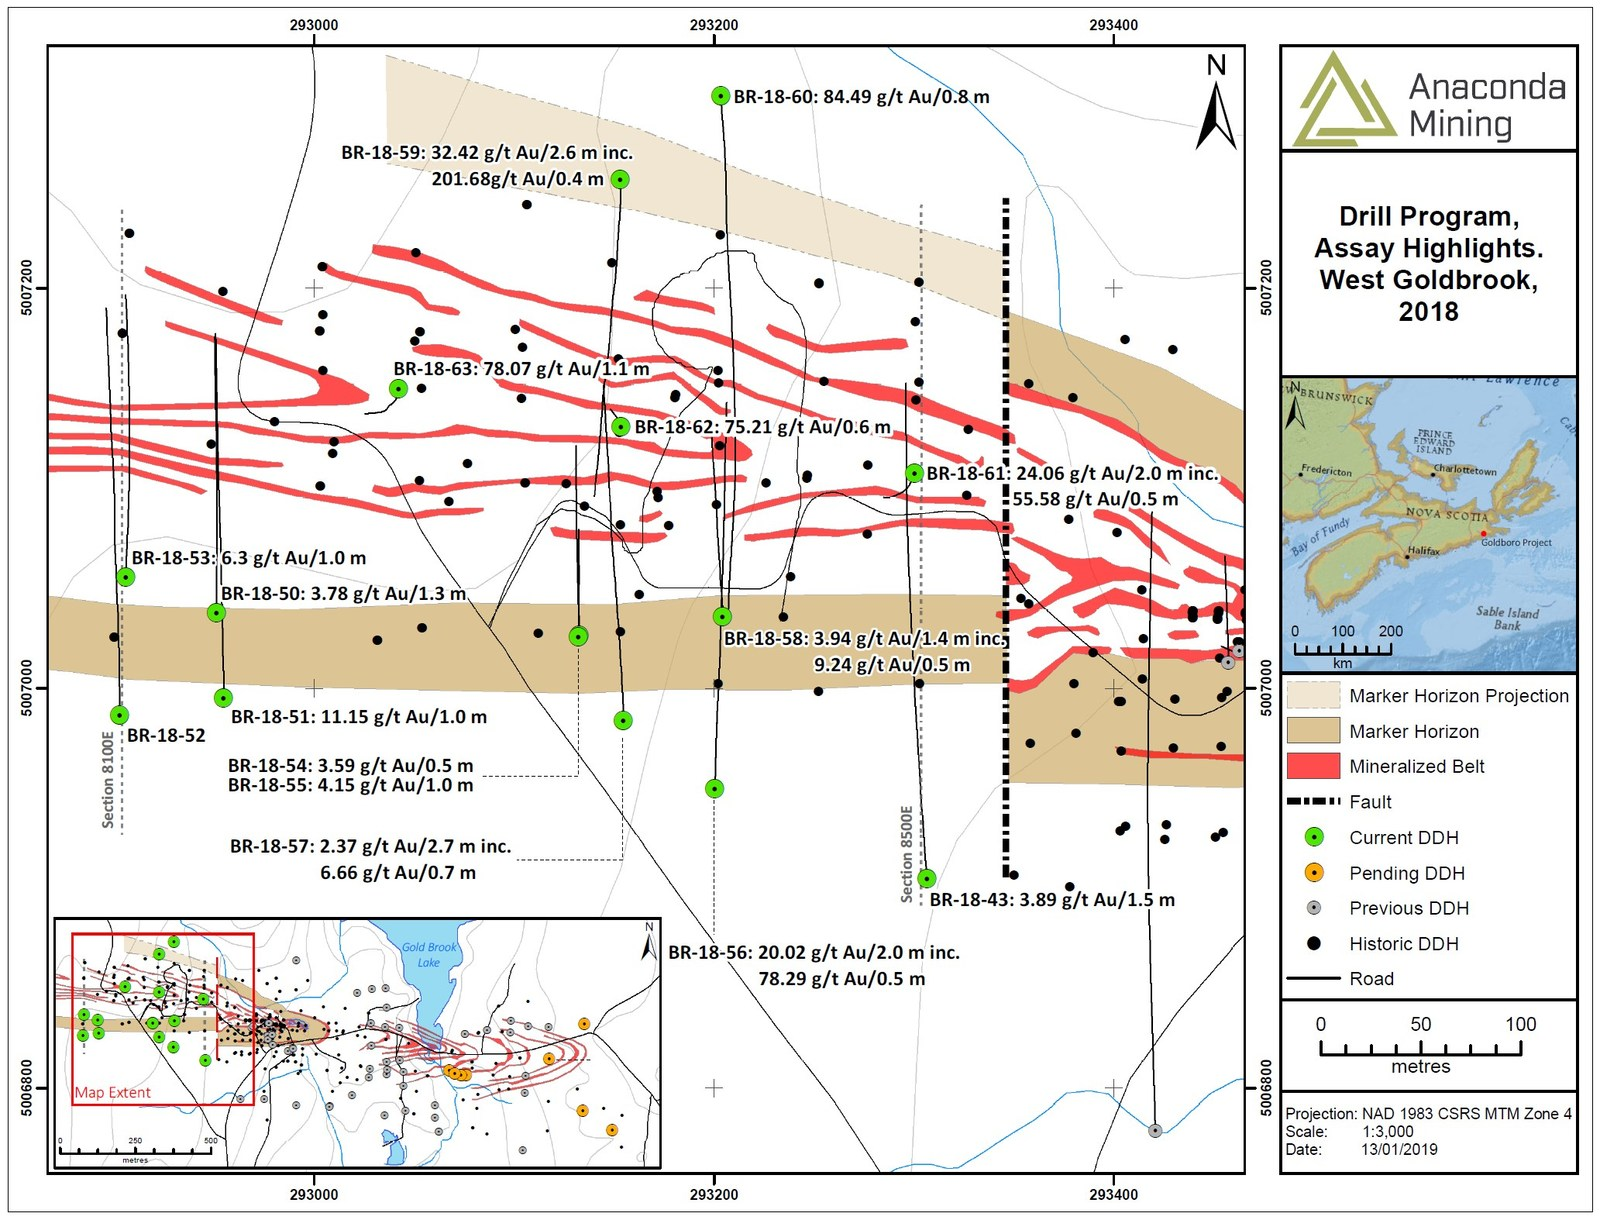 Exhibit B. A map of the West Goldbrook area showing the location of recent drilling and highlights. The Marker Horizon was intersected in drilling demonstrating that the mineralized zones of the WG Gold System are geologically equivalent to the BR Gold System.